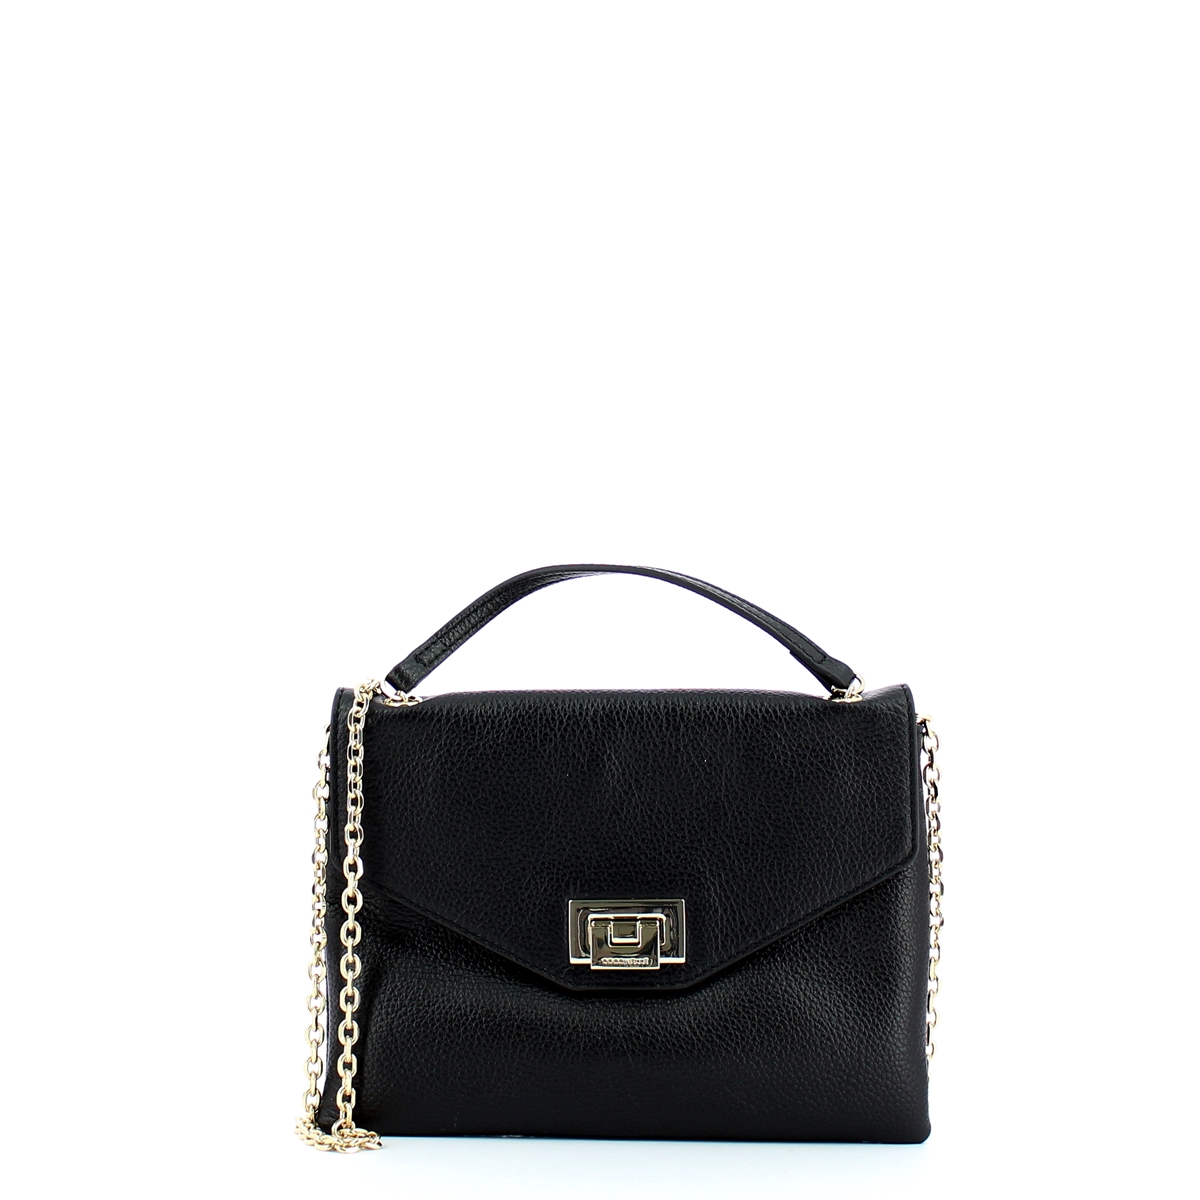 MINI MINI BAG NOIR